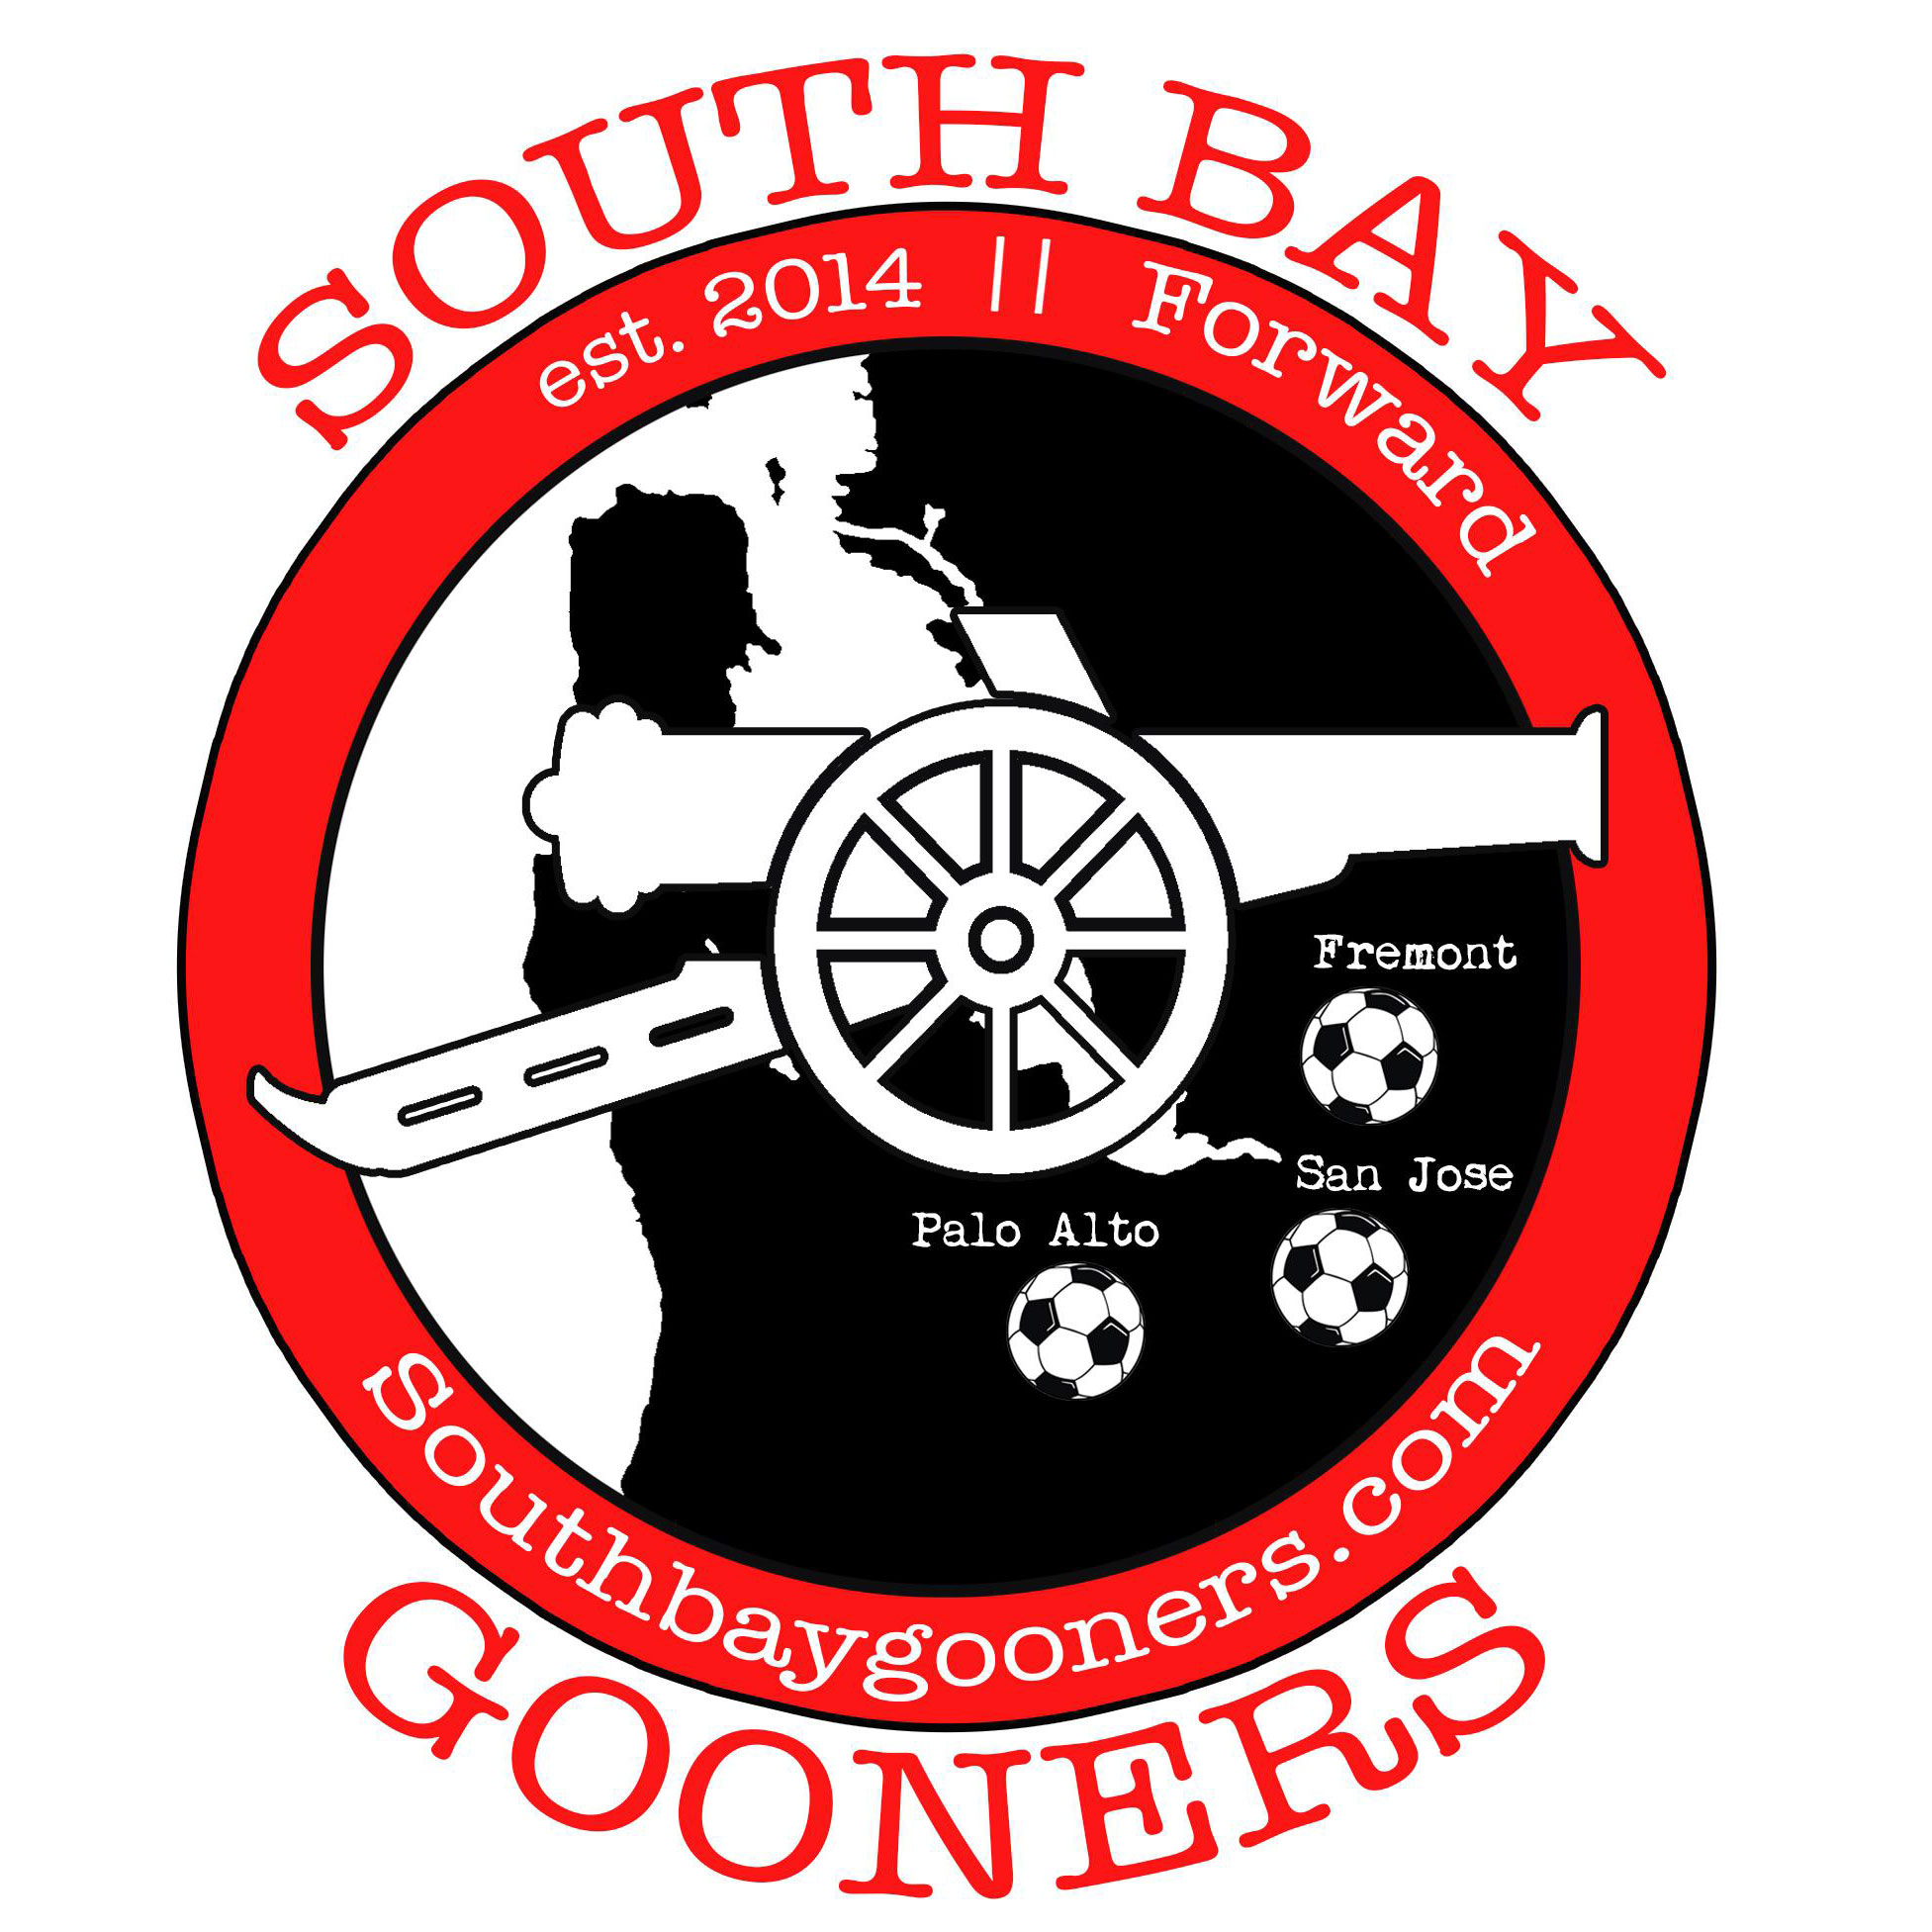 South Bay Gooners